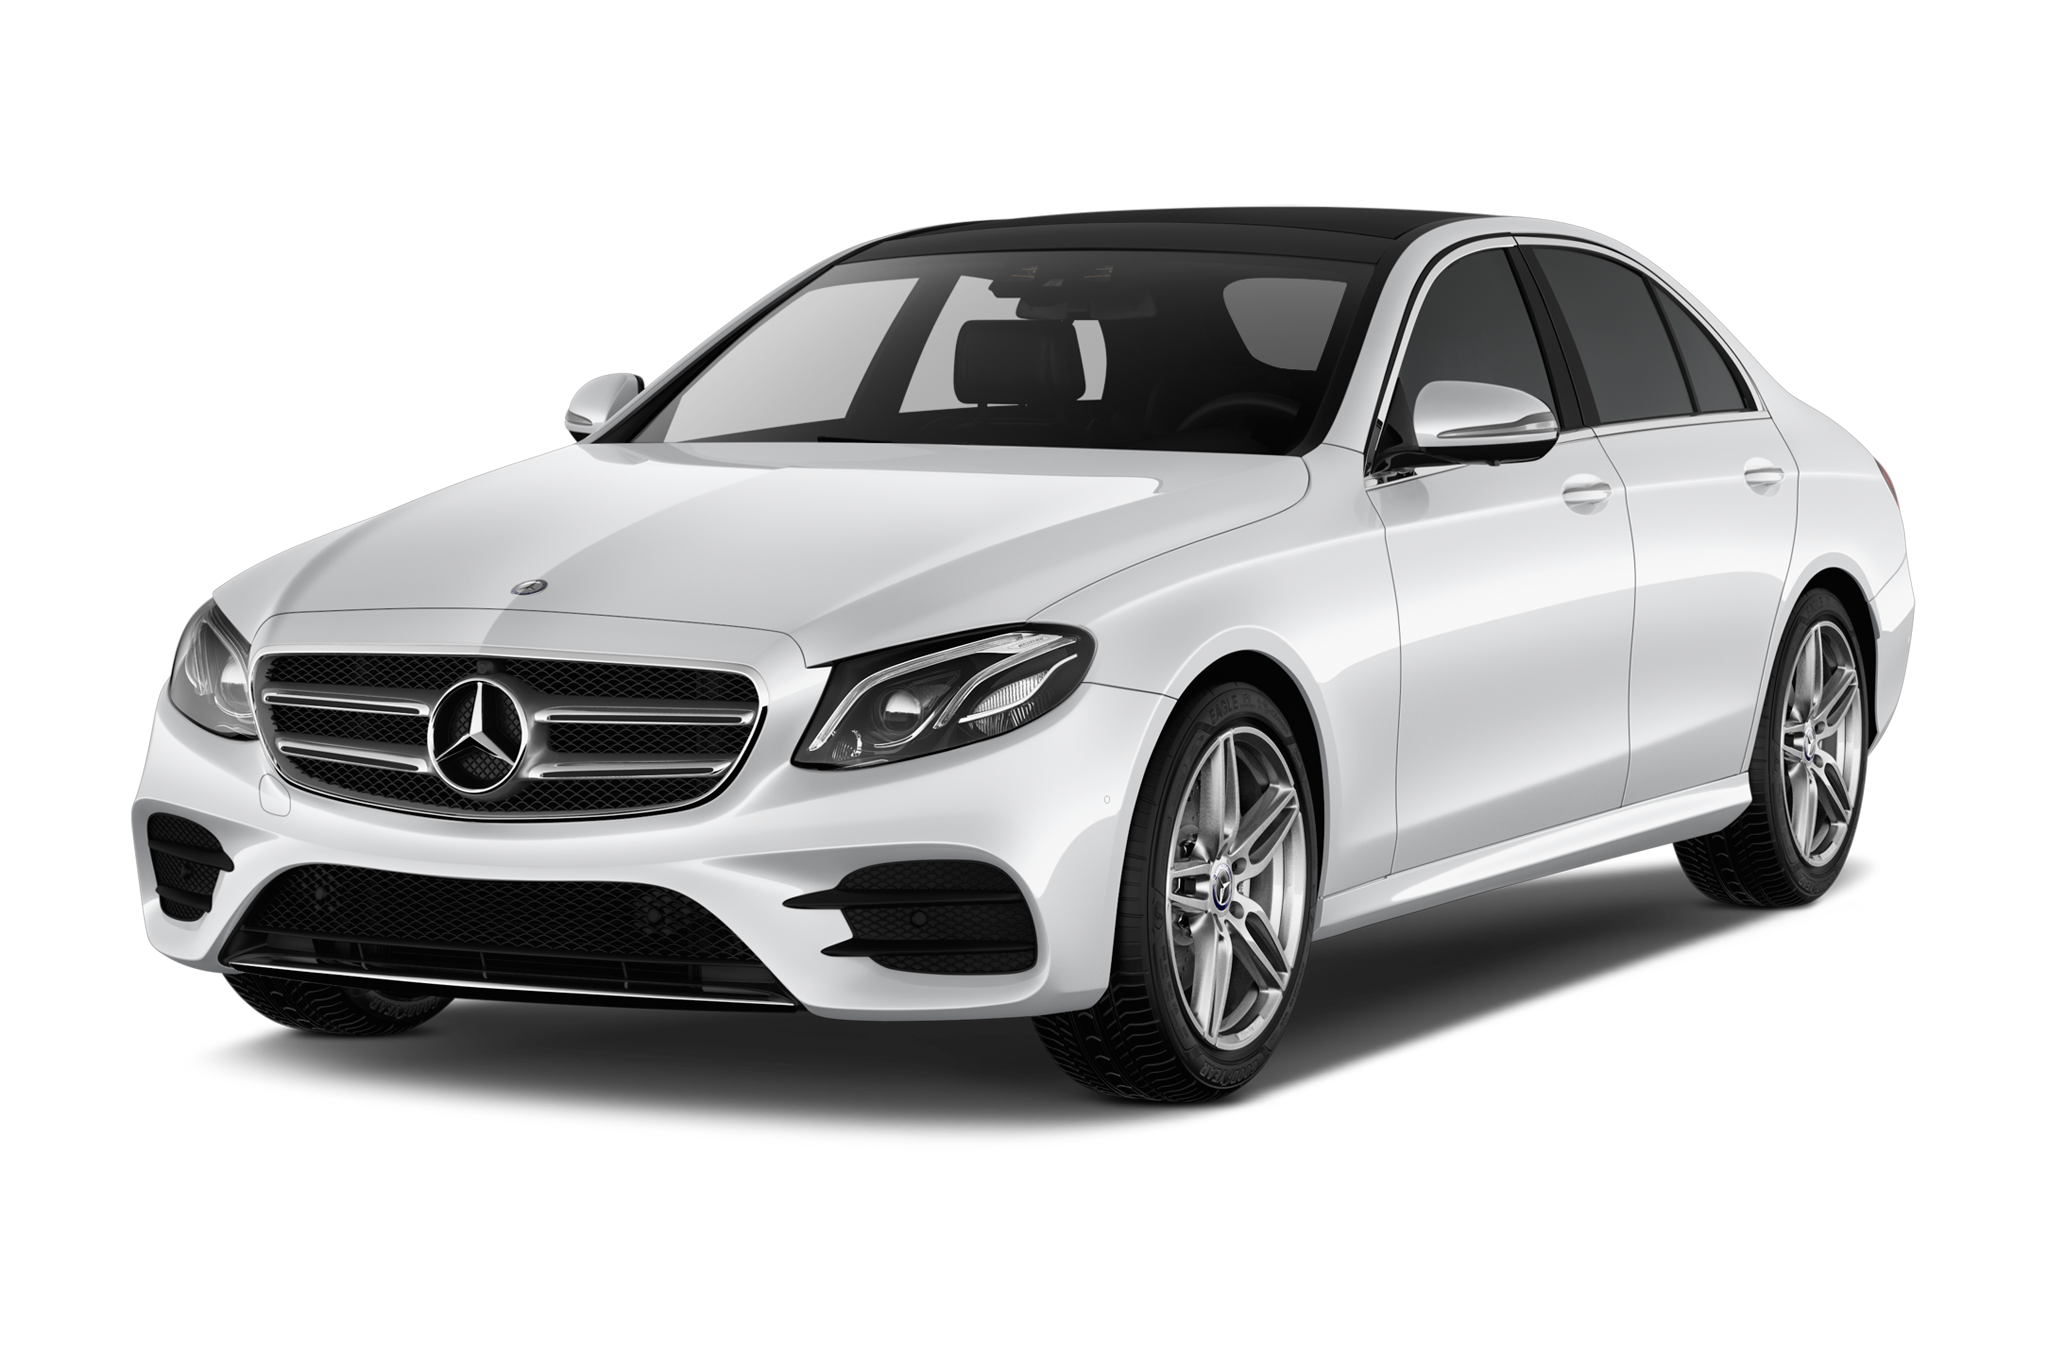 2017 mercedes benz e class e 300 4matic pricing msn autos. Black Bedroom Furniture Sets. Home Design Ideas